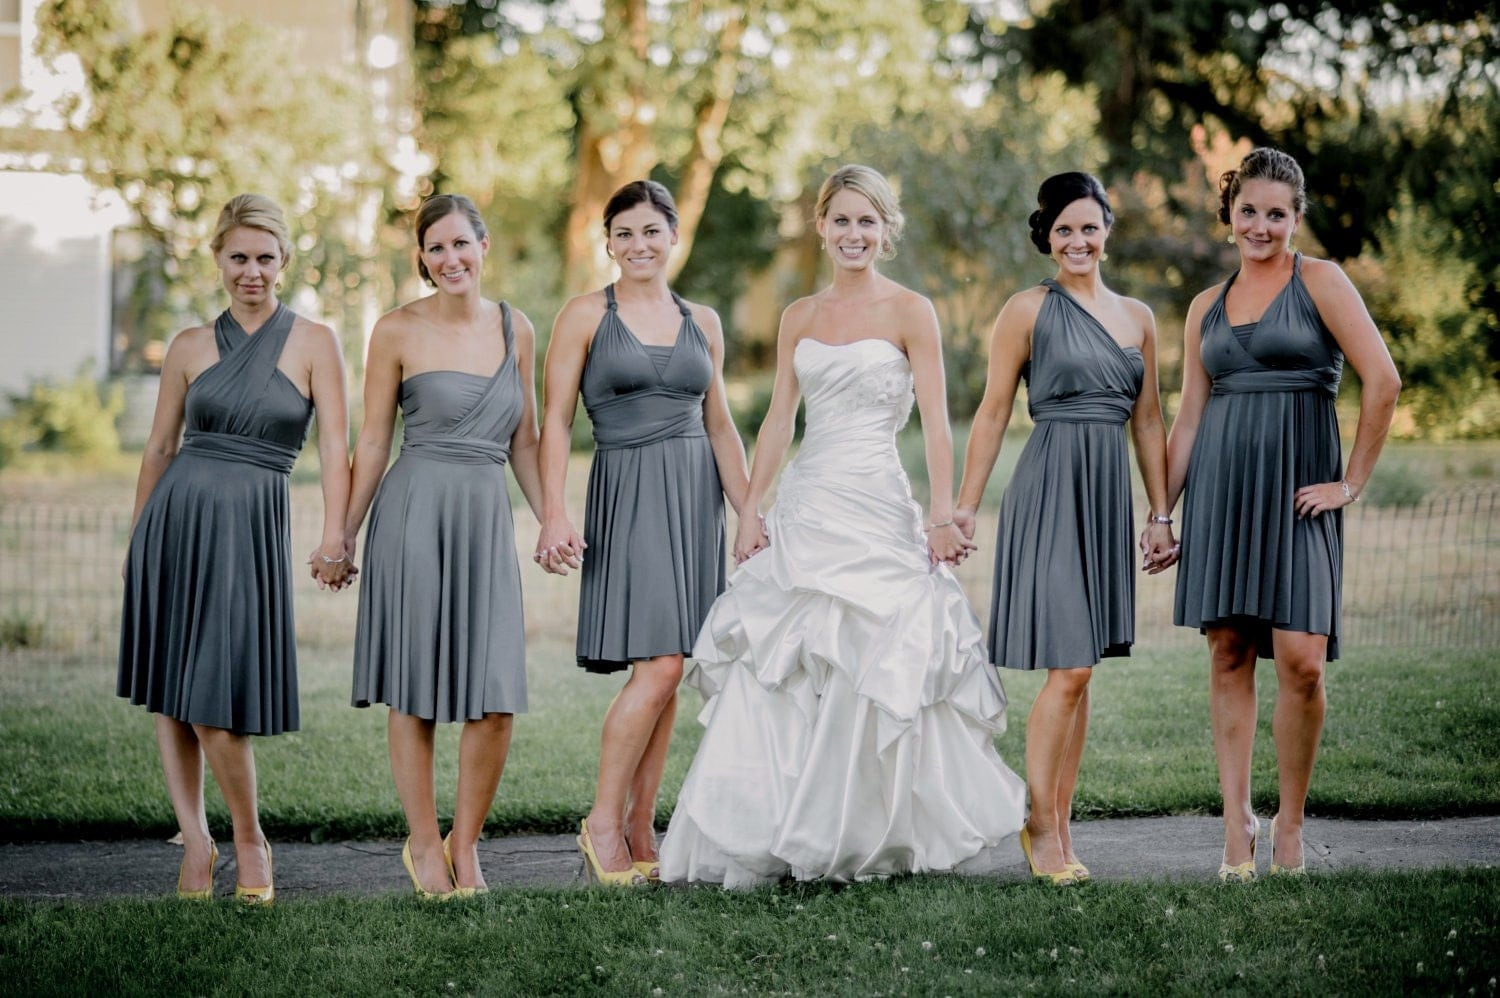 Gray convertible bridesmaid dresses fashion dresses gray convertible bridesmaid dresses ombrellifo Image collections